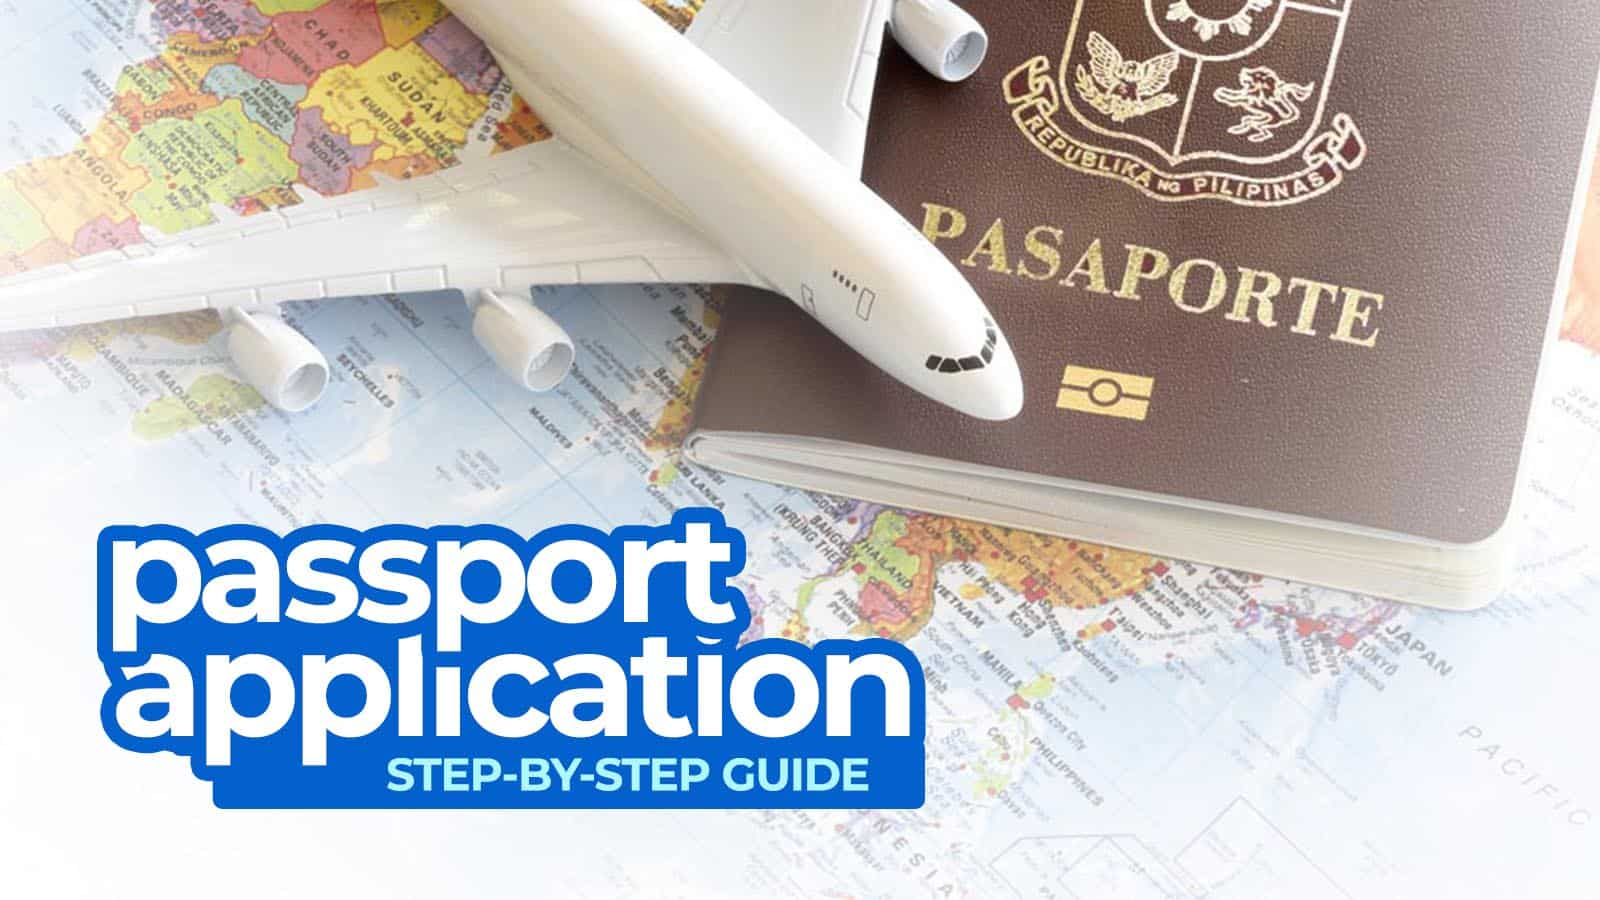 dfa online passport application appointment